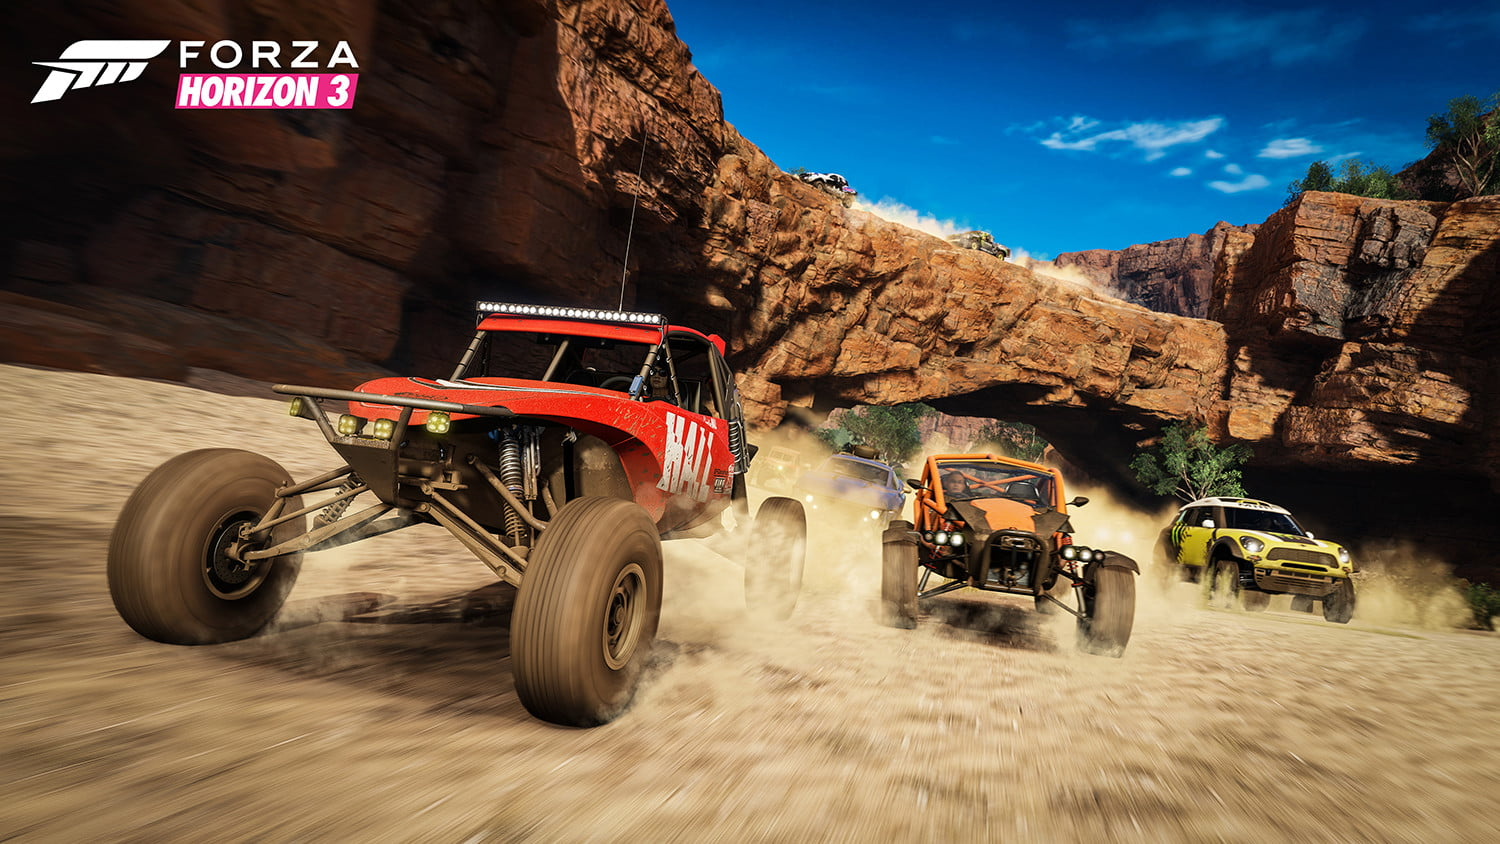 Forza Horizon 3 PC Pre-Load Goes Live